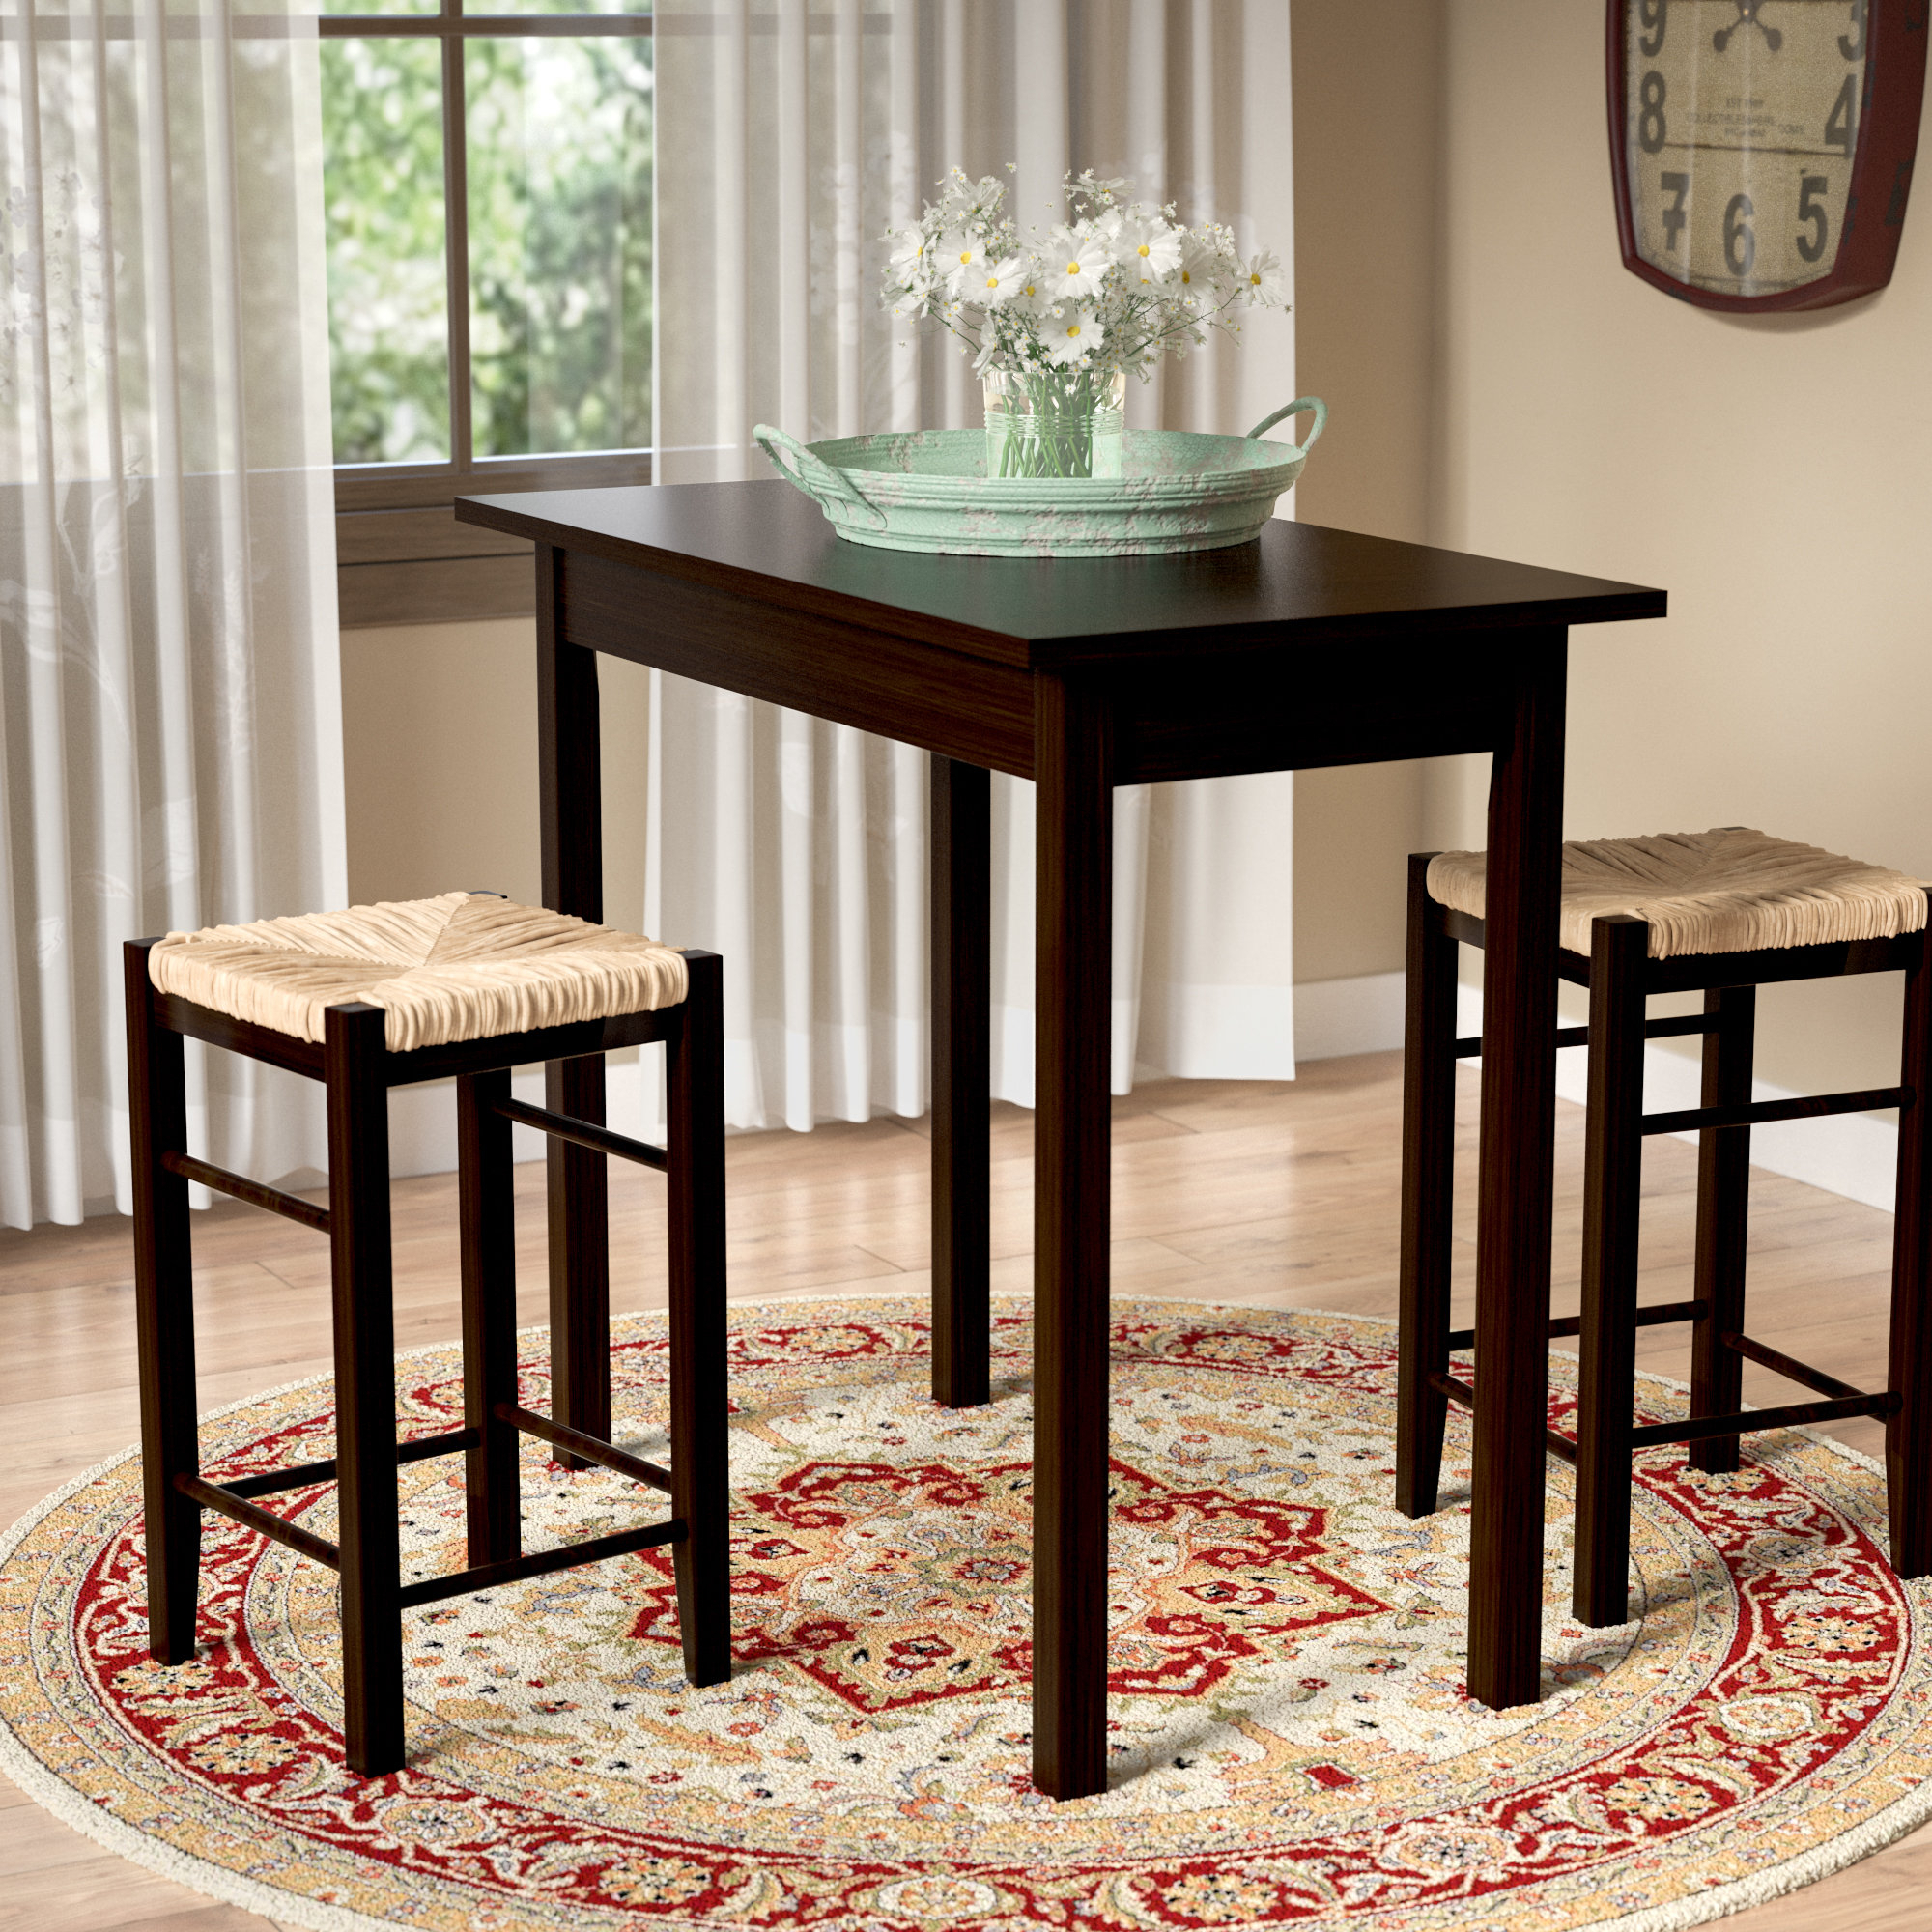 Widely Used August Grove Tenney 3 Piece Counter Height Dining Set & Reviews Intended For Nutter 3 Piece Dining Sets (View 5 of 20)